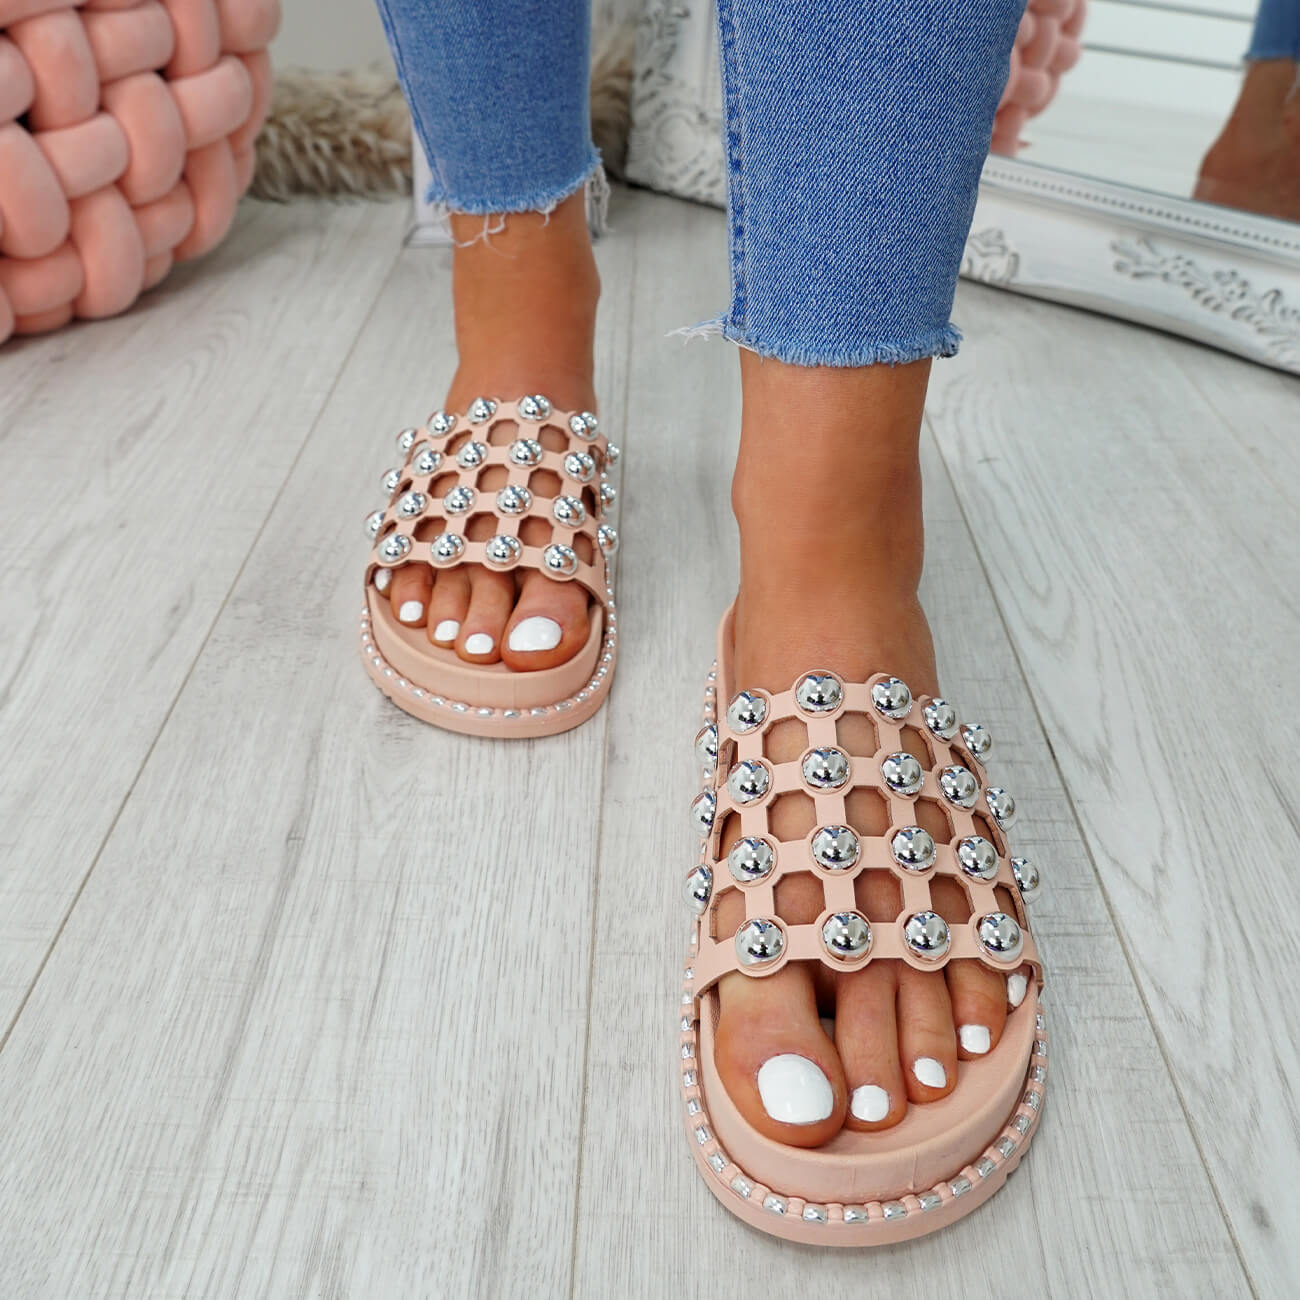 WOMENS-LADIES-PEARL-STUDDED-SLIP-ON-FLAT-SANDALS-HEELS-FLIP-FLOP-SHOES-SIZE thumbnail 12